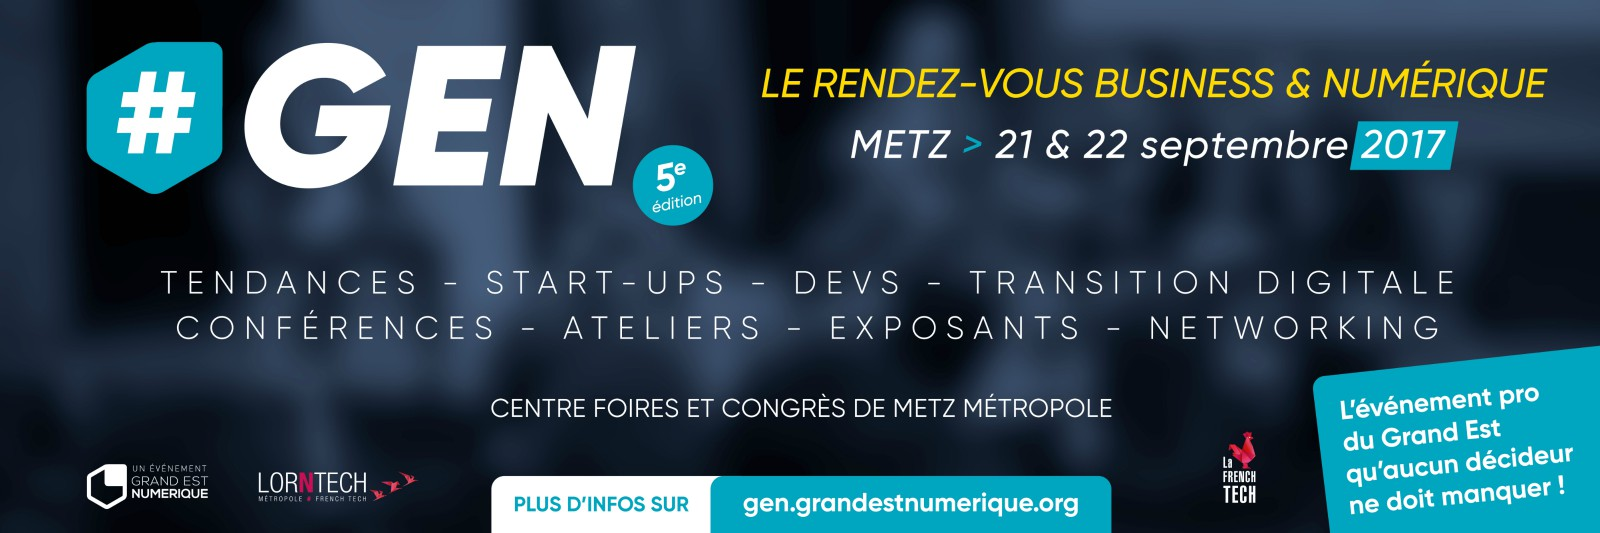 Photo of #GEN : le n°1 de Google France à Metz le 21 septembre 2017